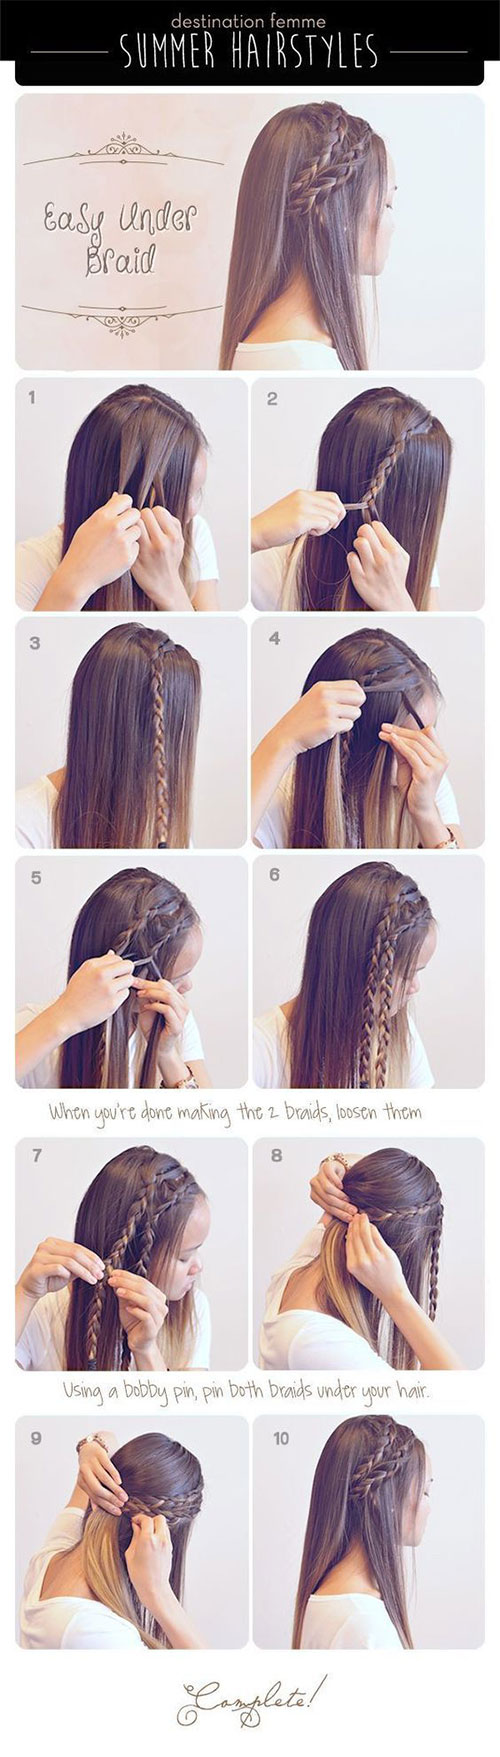 12-Easy-Step-By-Step-Summer-Hairstyle-Tutorials-For-Beginners-2017-4